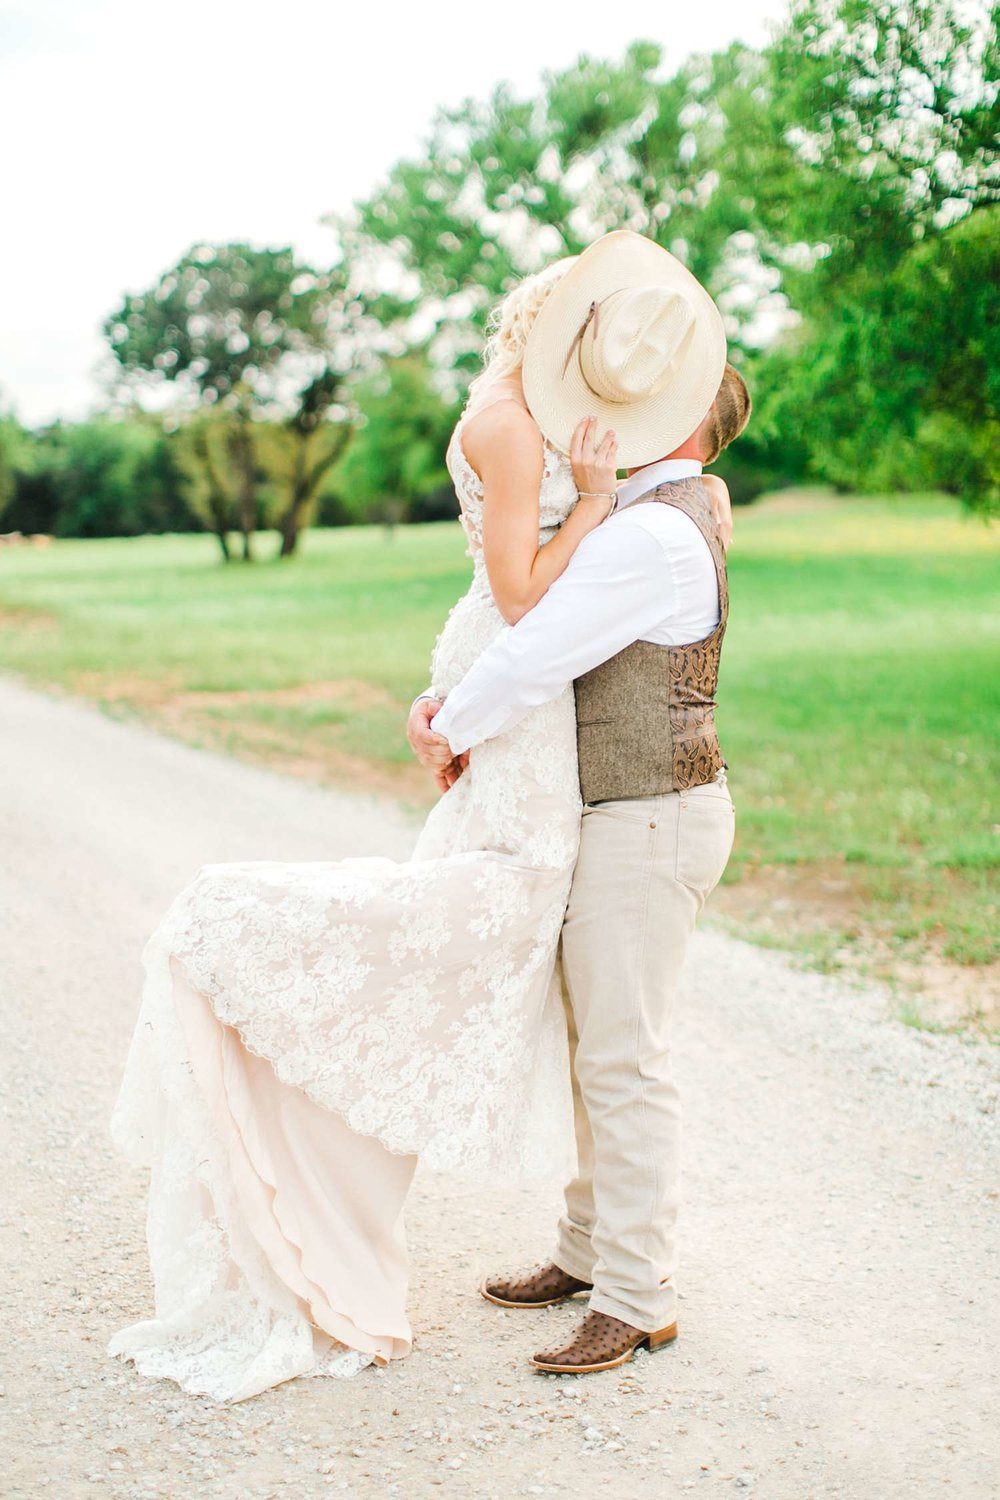 SARAH+TREVOR+BADGETT+SPARROW+CREEK+GRAHAM+TEXAS+ALLEEJ+WEDDINGS_0107.jpg